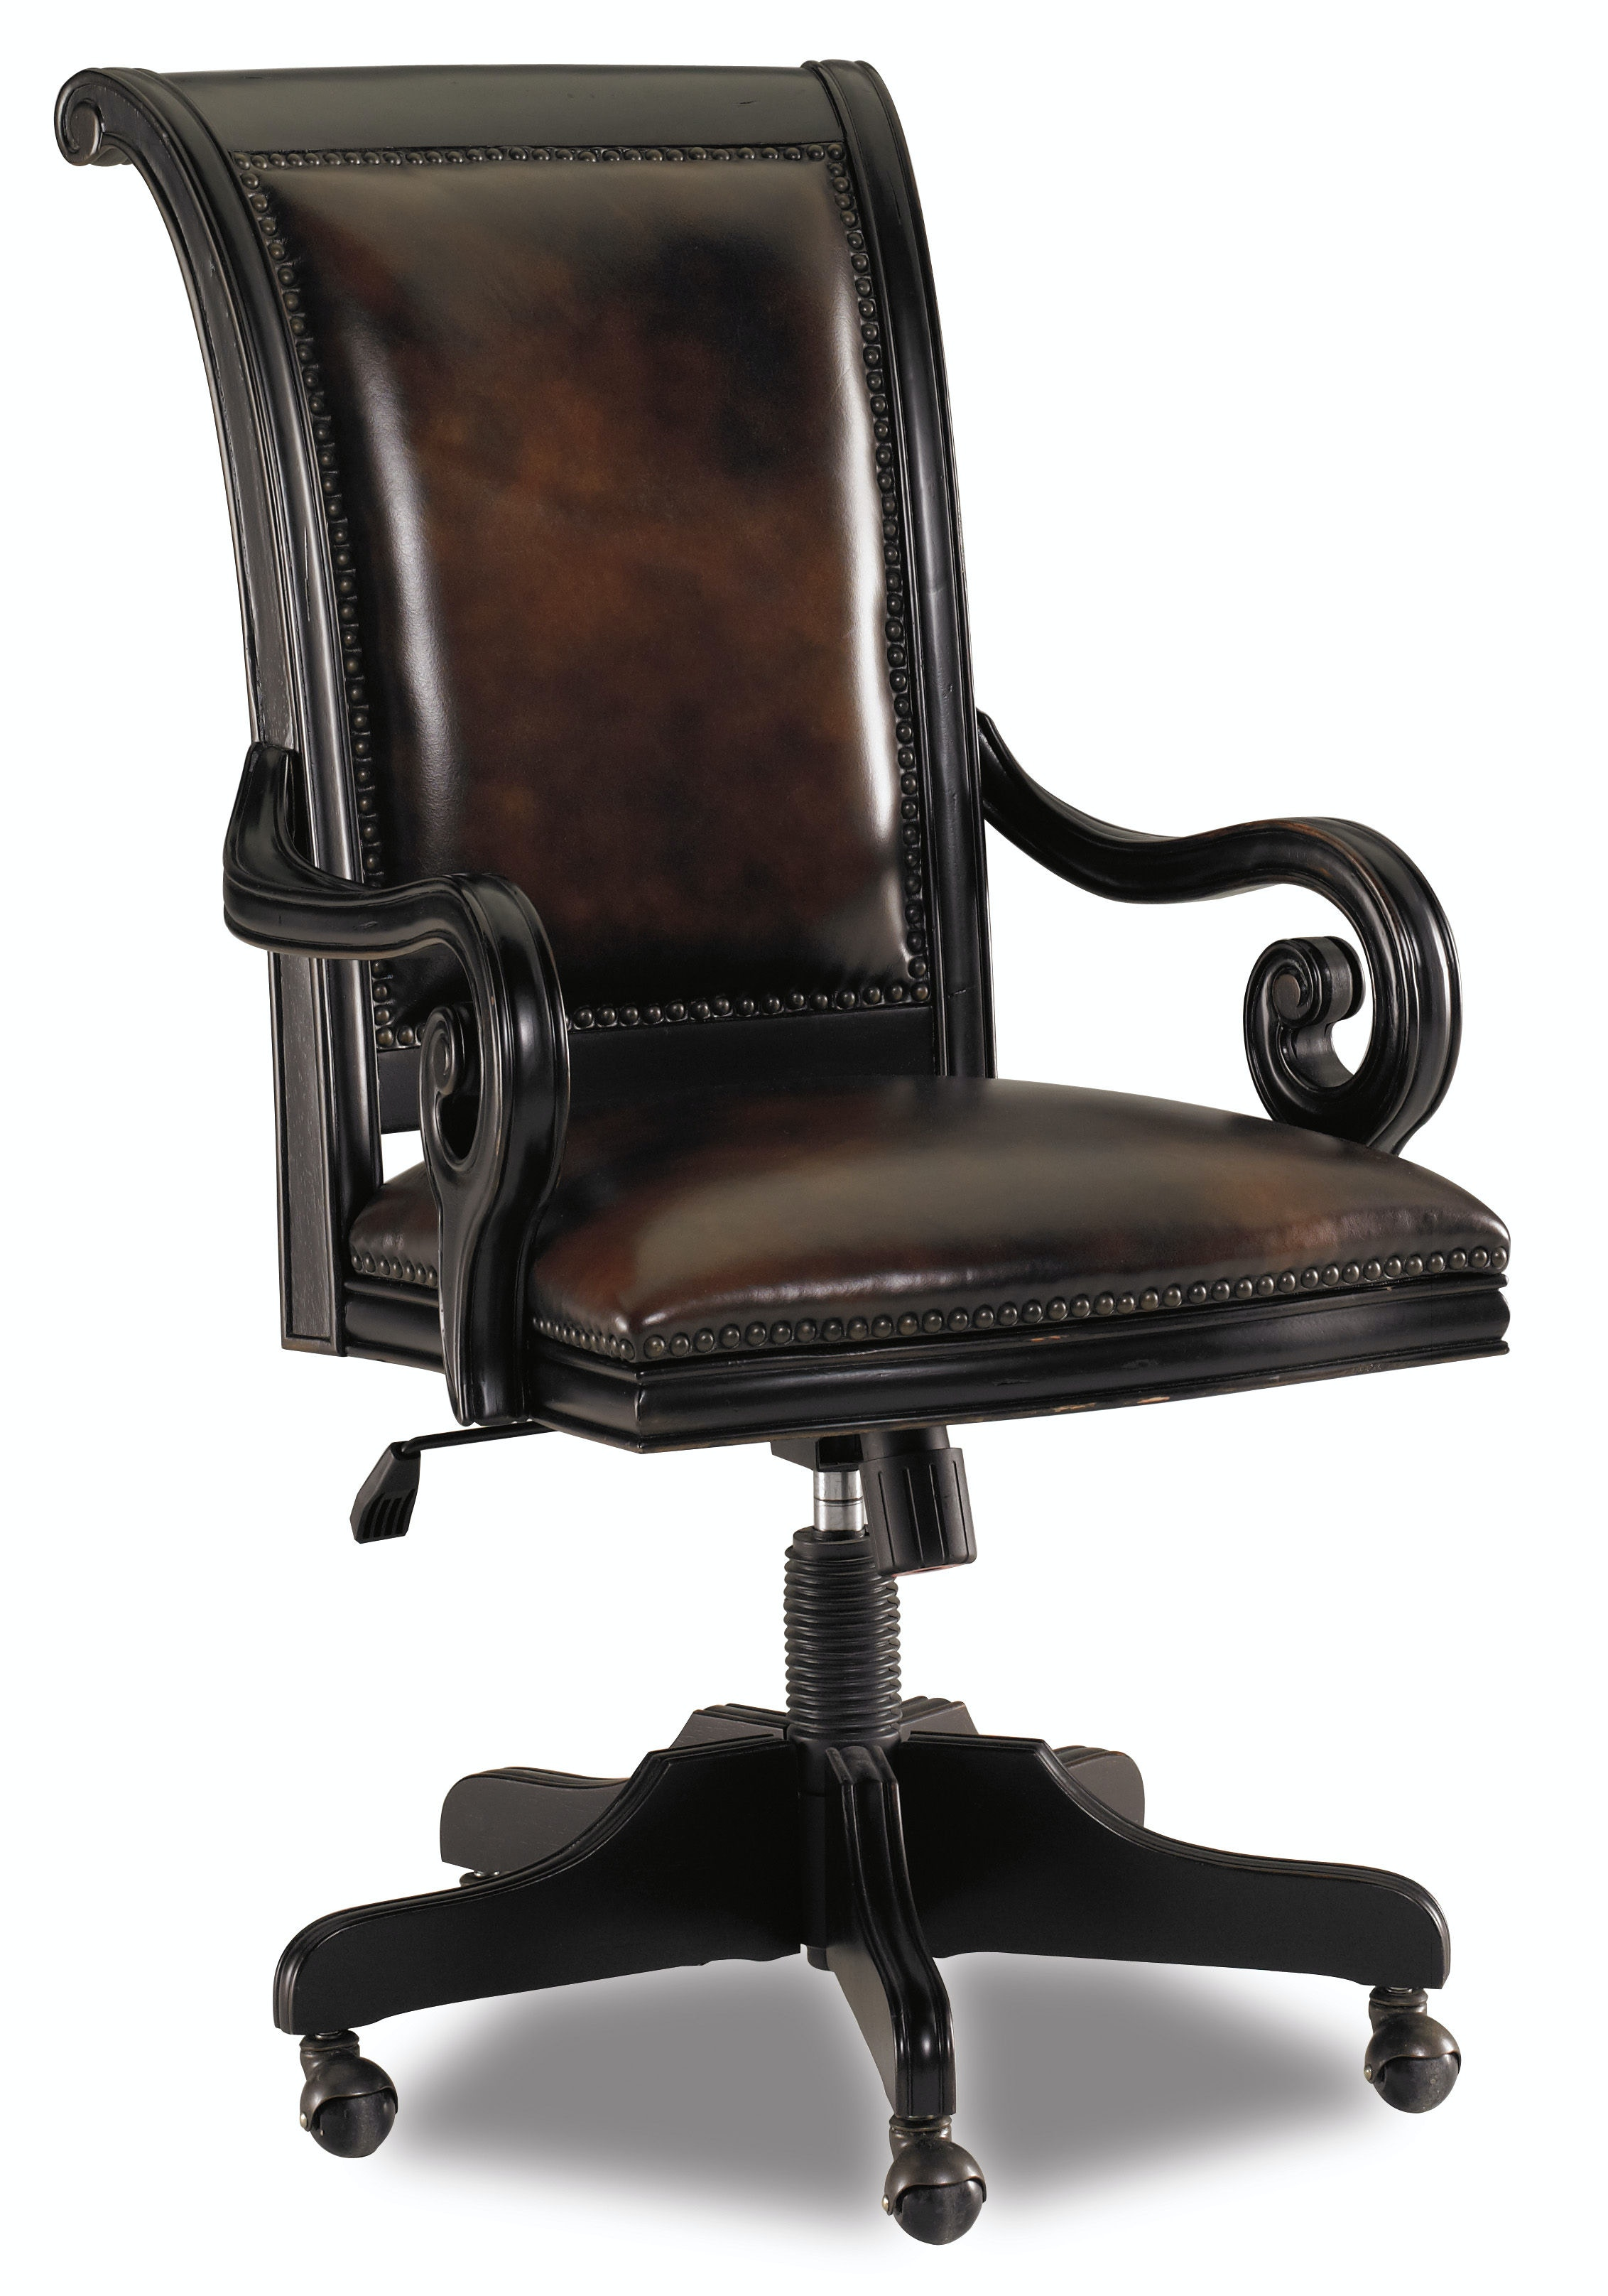 Hooker Furniture Telluride Tilt Swivel Chair 370-30-220